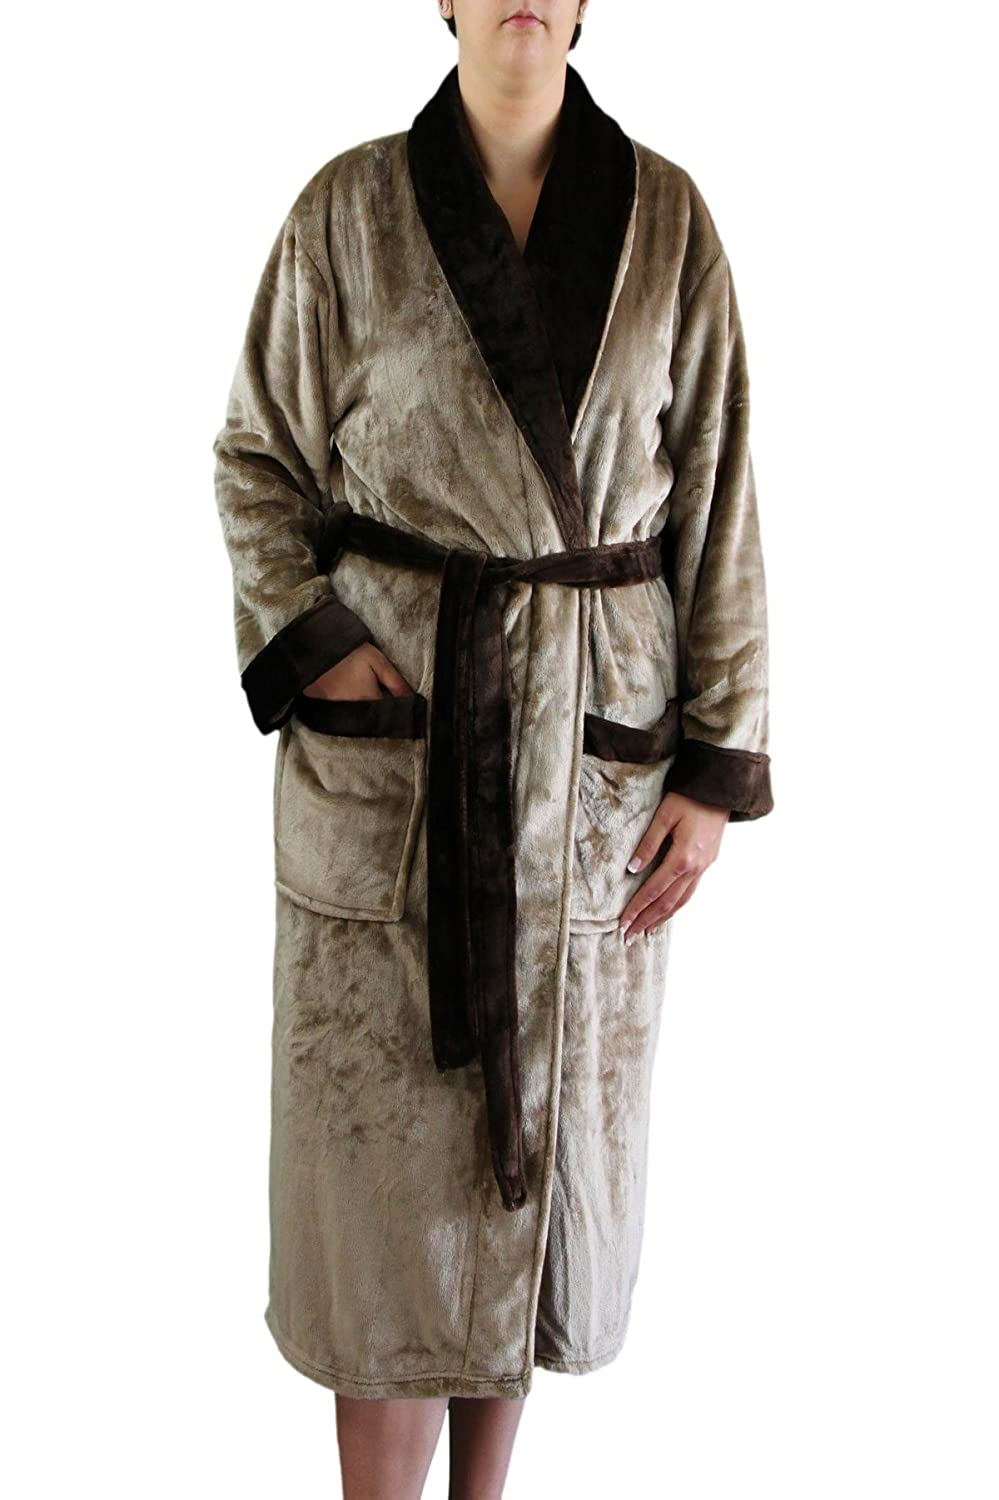 Goezze 20014-85-3 silk feeling bath robe with shawl collar, White, Größe S Gözze 20014-00-1